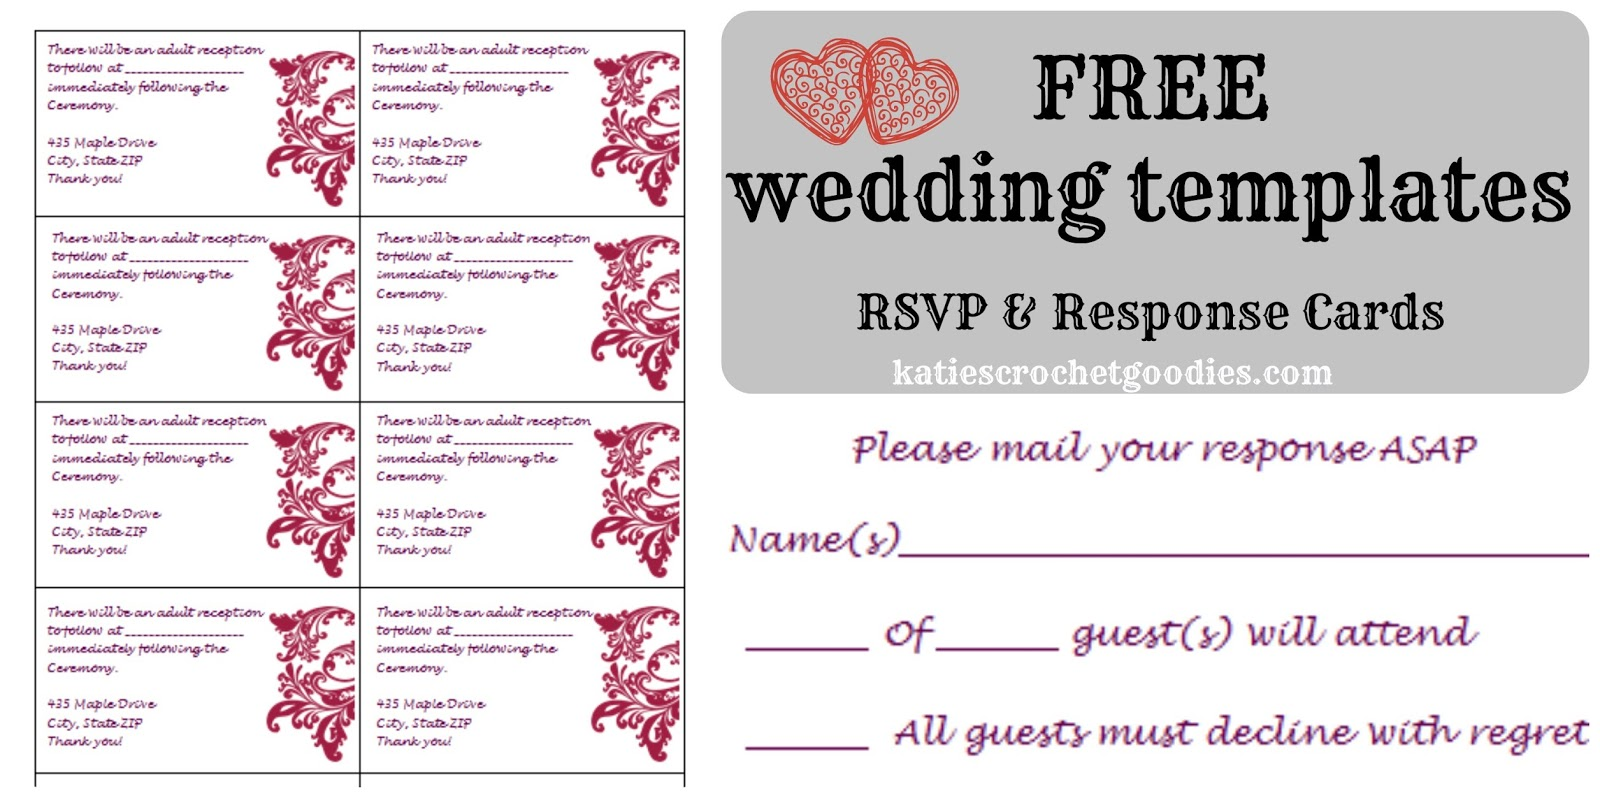 Free Wedding Templates: RSVP & Reception Cards - Katie\'s Crochet Goodies